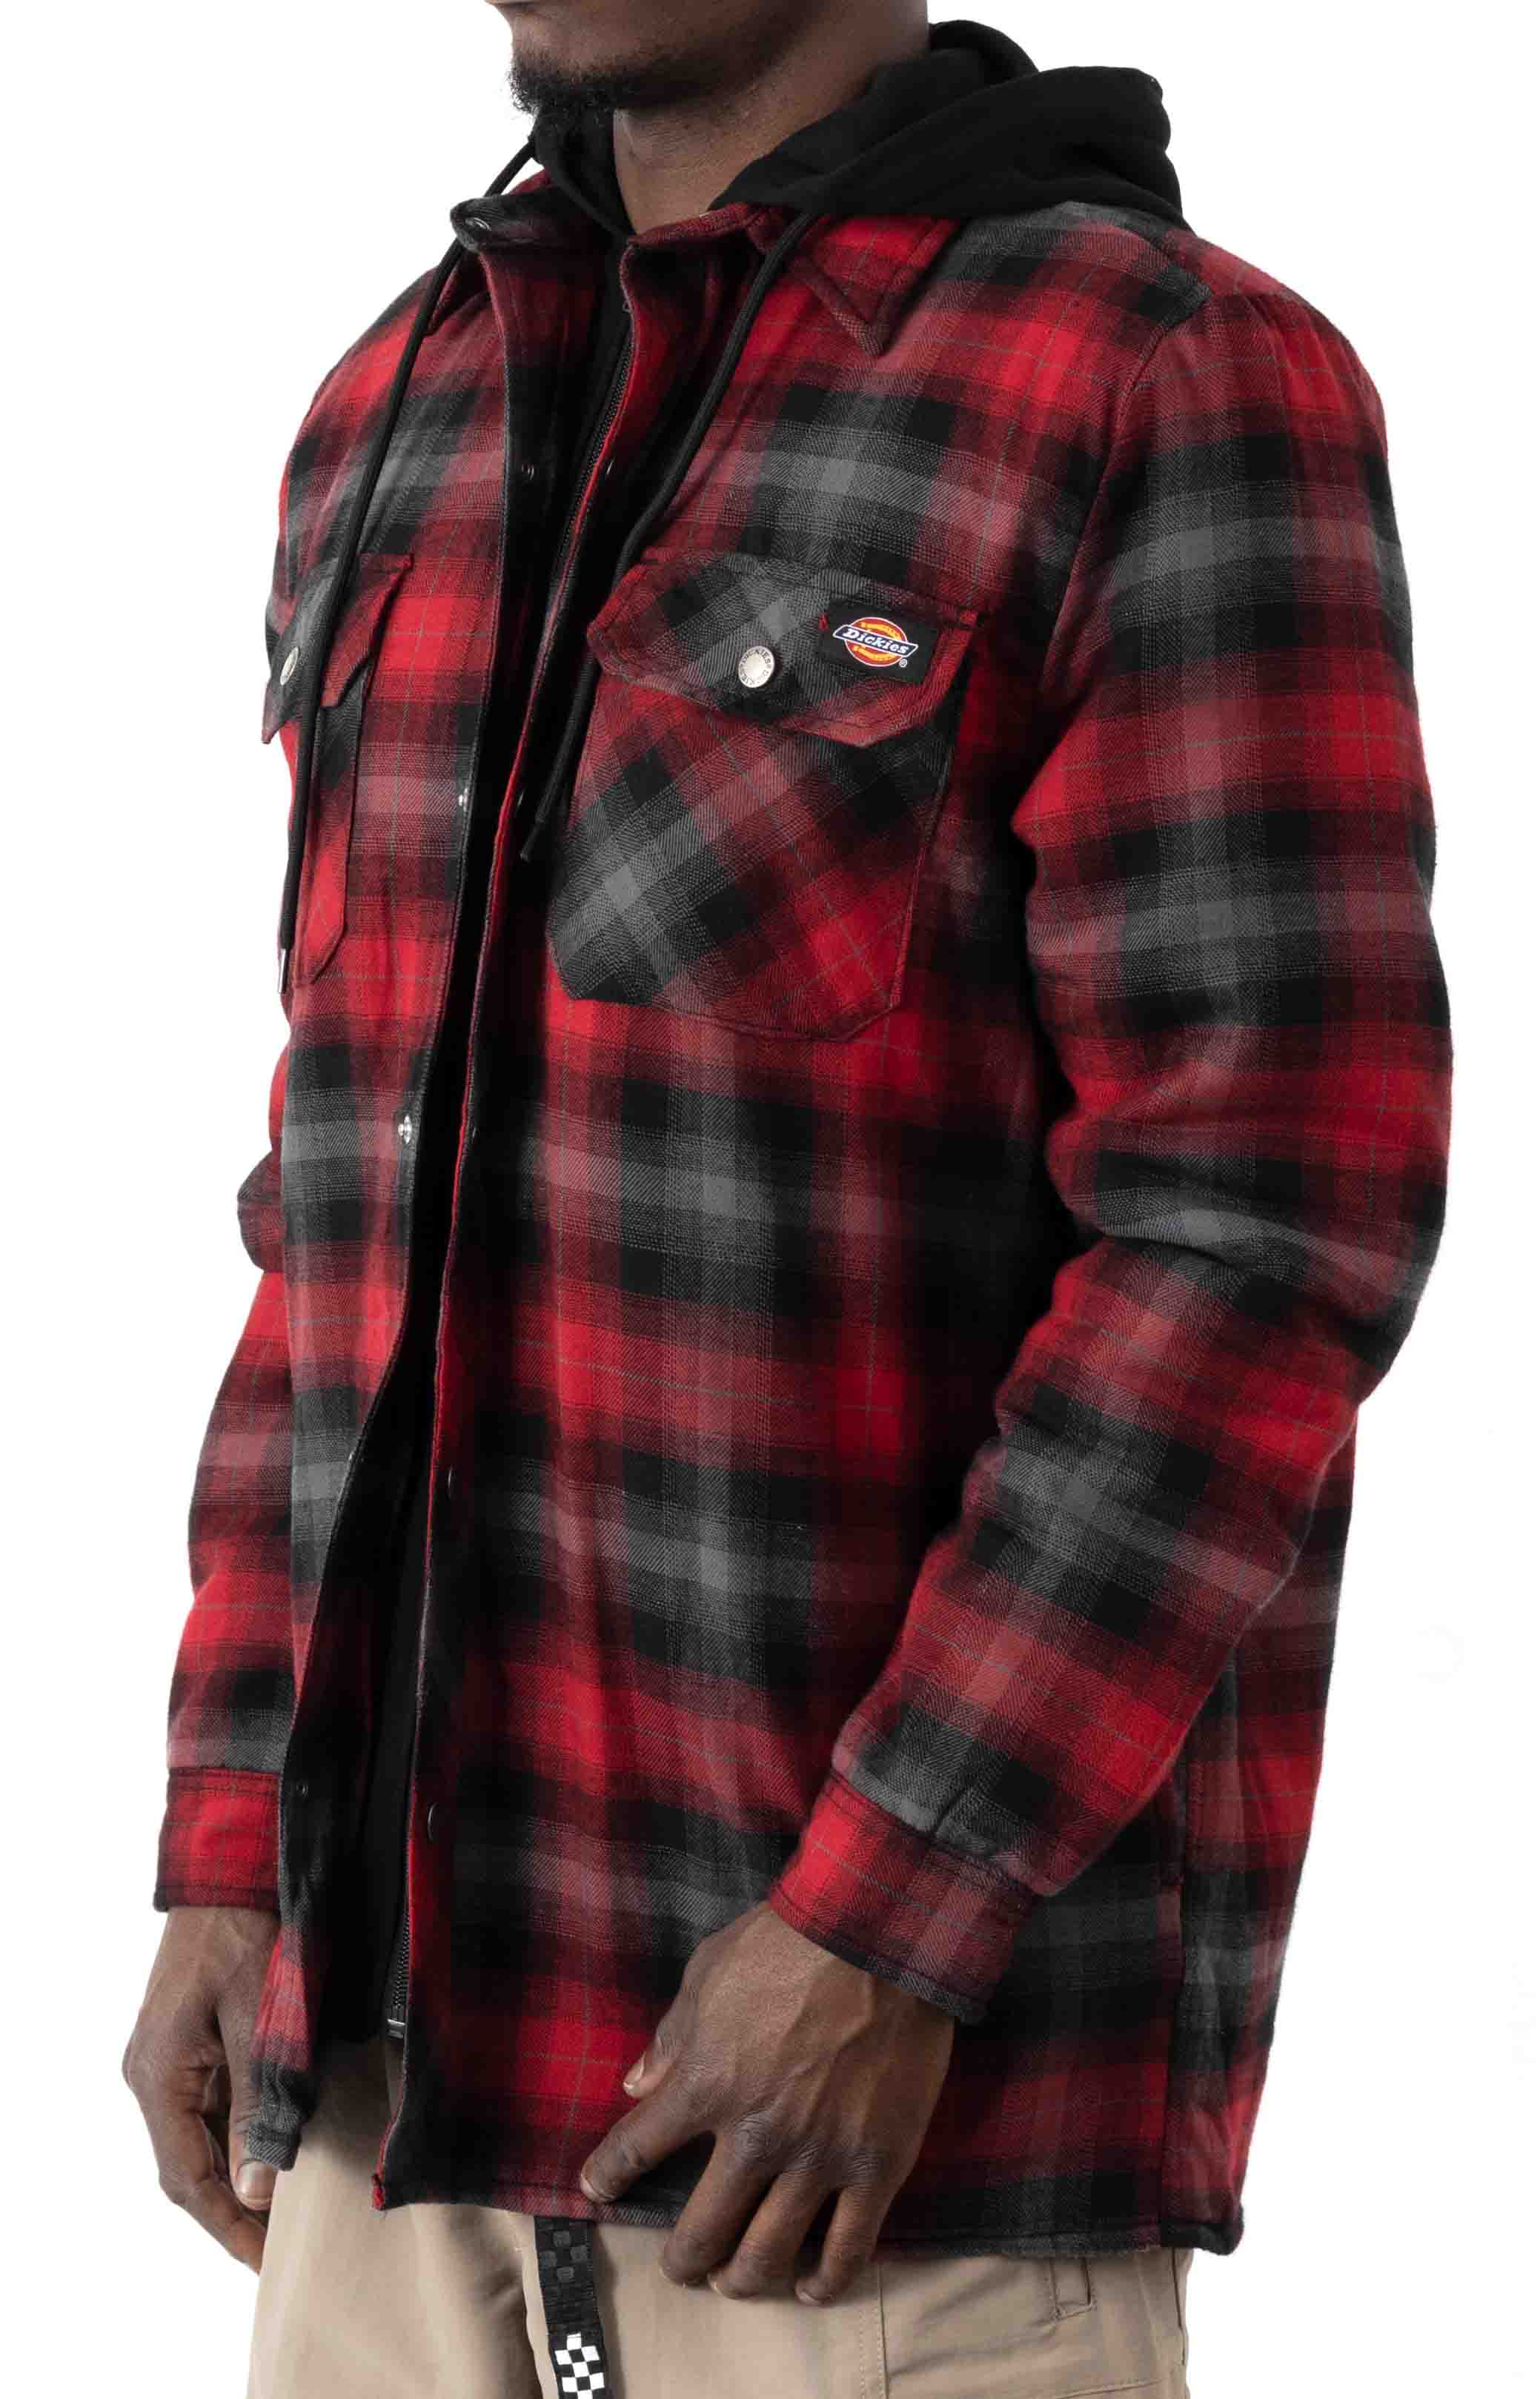 (TJ211INP1) Fleece Hooded Flannel Shirt Jacket with Hydroshield - English Red Black Ombre P 2